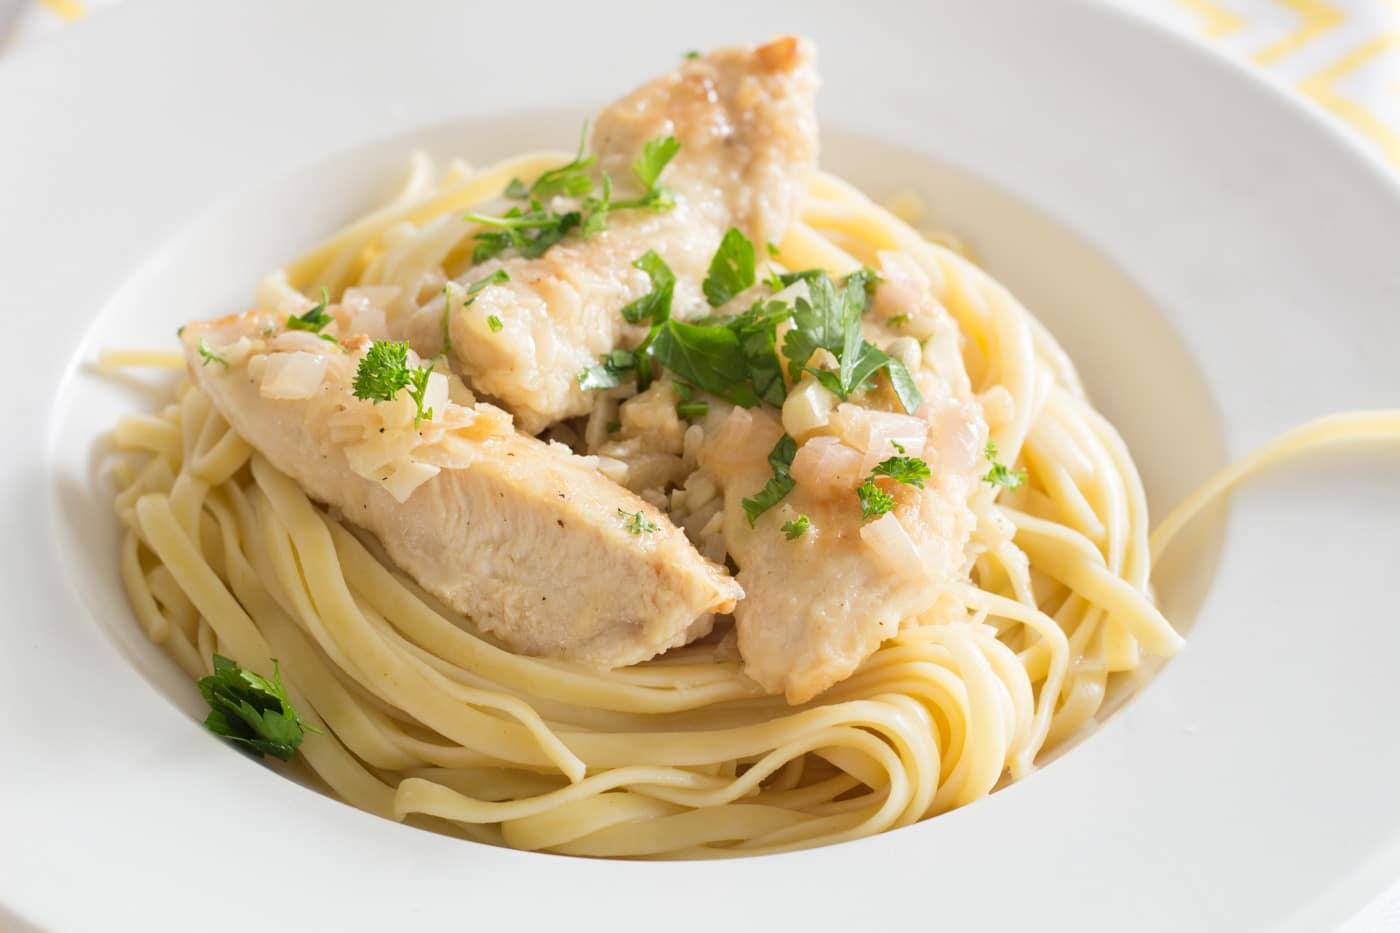 chicken scampi with parlsey on linguine